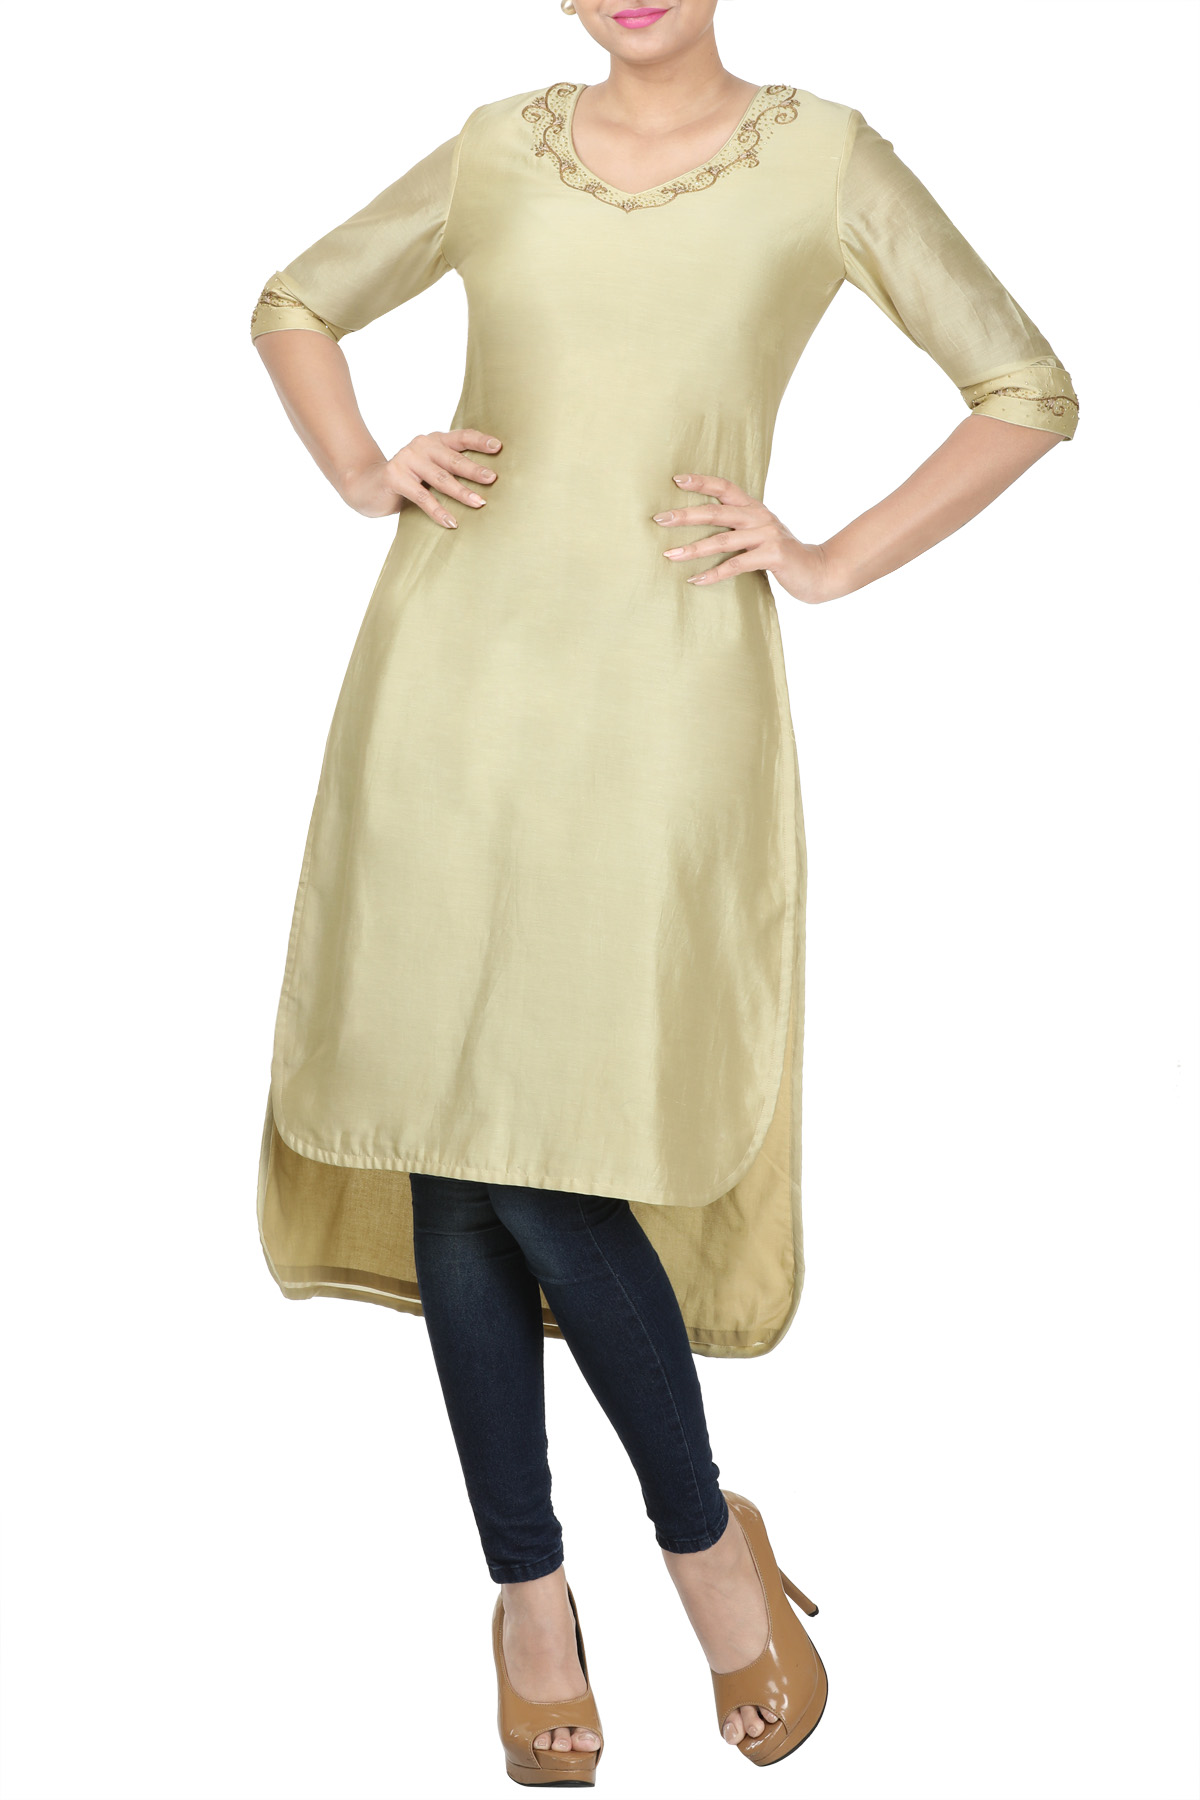 Beige Kurti with hand embroidery at neckline and sleeves.